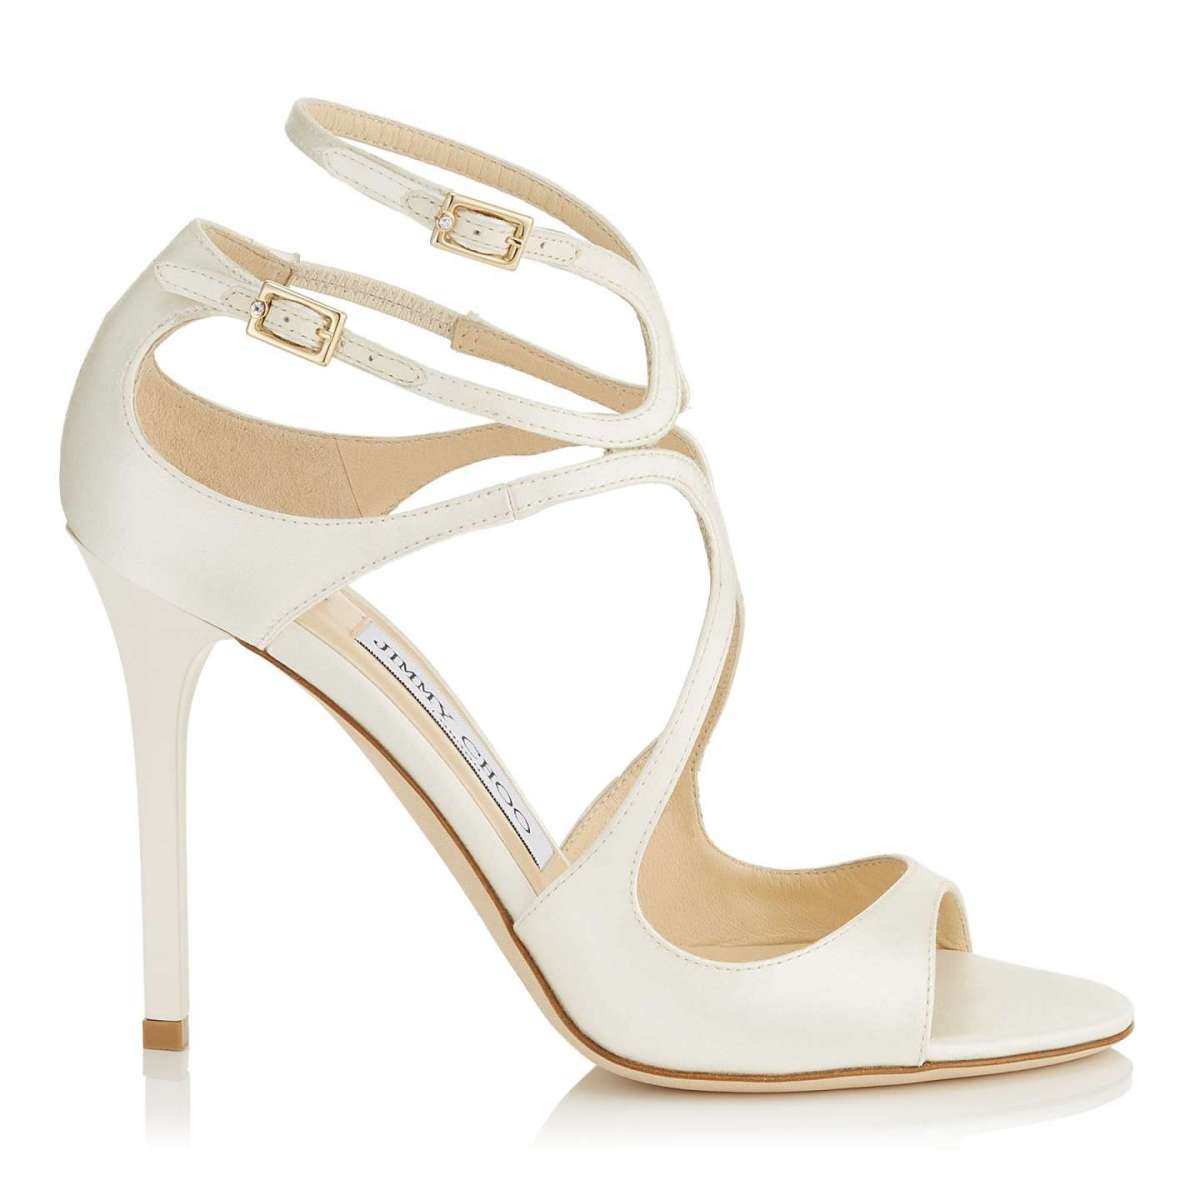 How Much Are Jimmy Choo Wedding Shoes